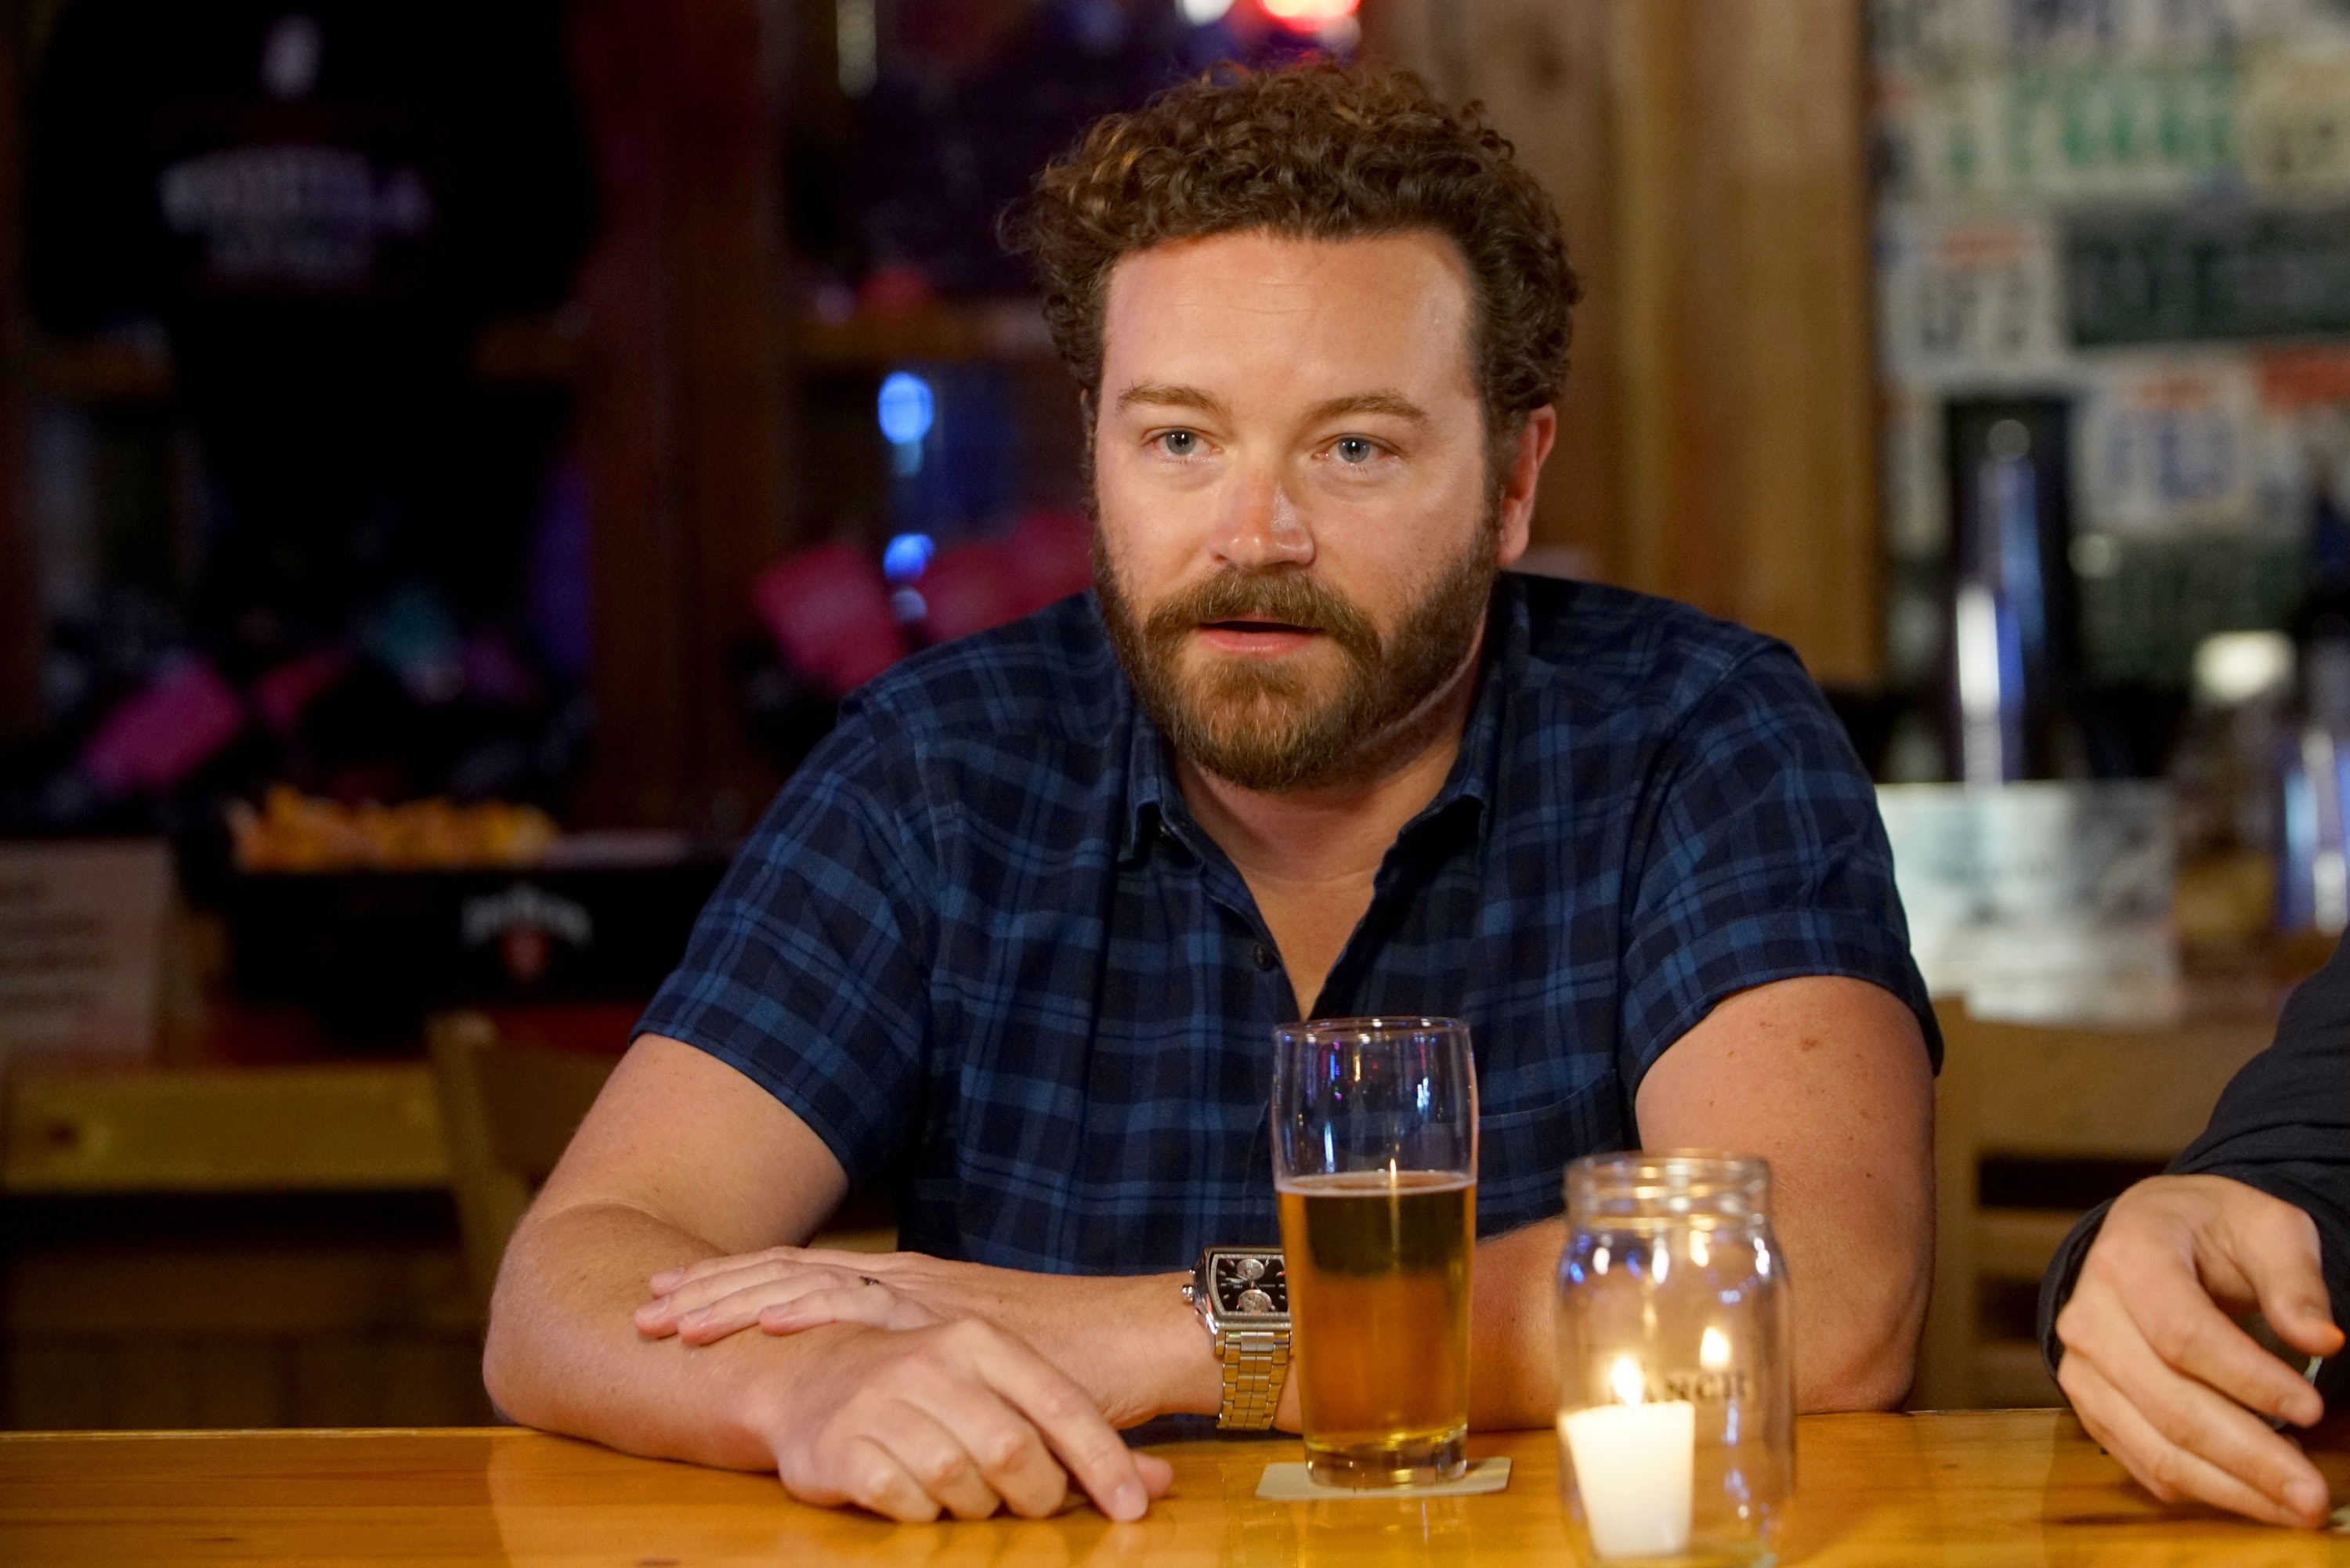 Netflix Exec Leaves Company After Reportedly Making Controversial Danny Masterson Comments